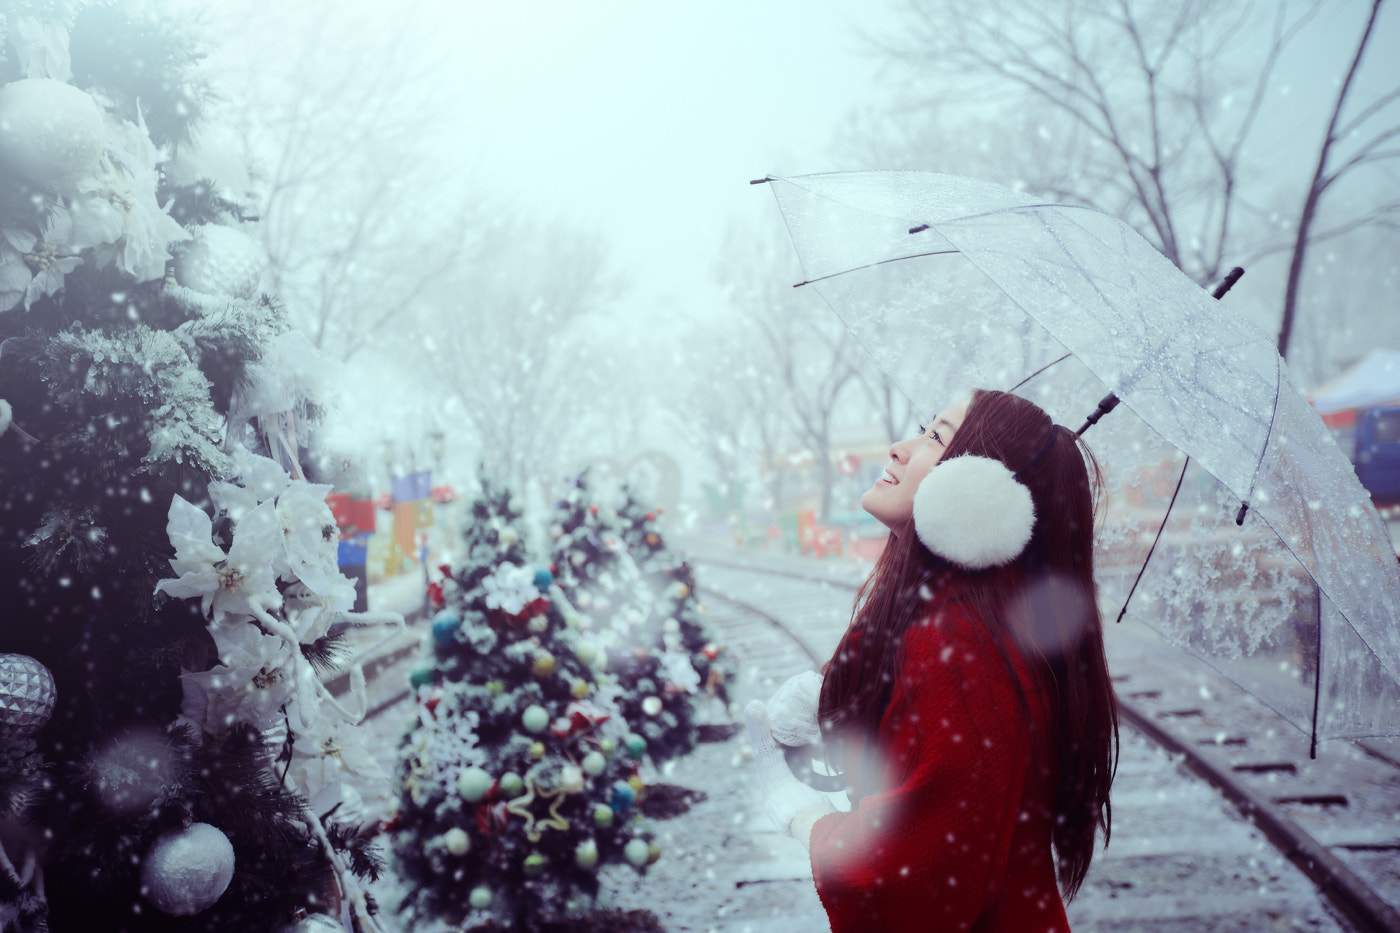 Photograph In Love On Christmas #4 by Sin Dong Kim on 500px